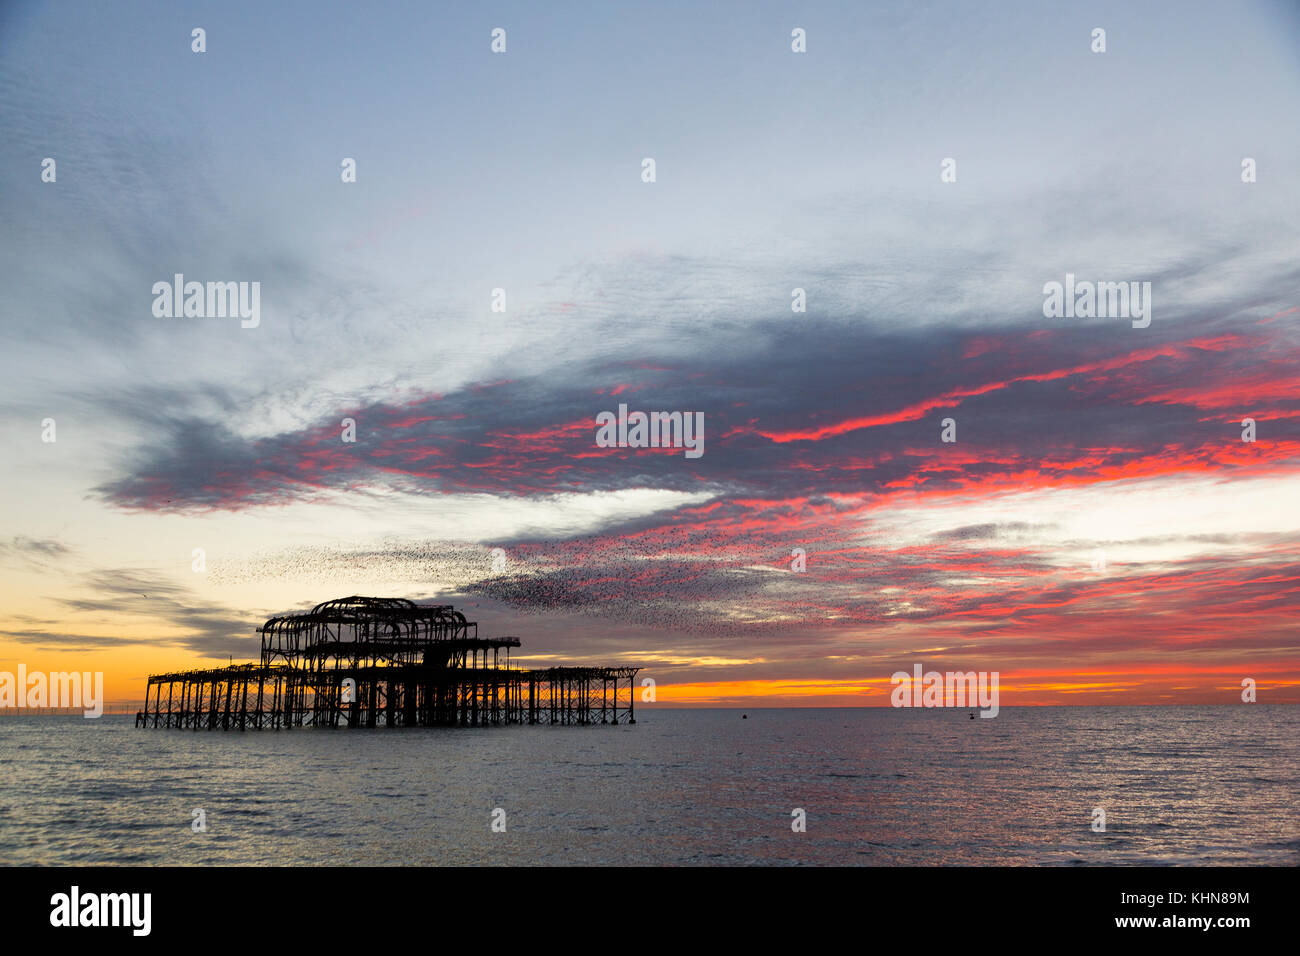 Brighton, UK. Starling murmurations at sunset over Brighton's derelict west pier. - Stock Image